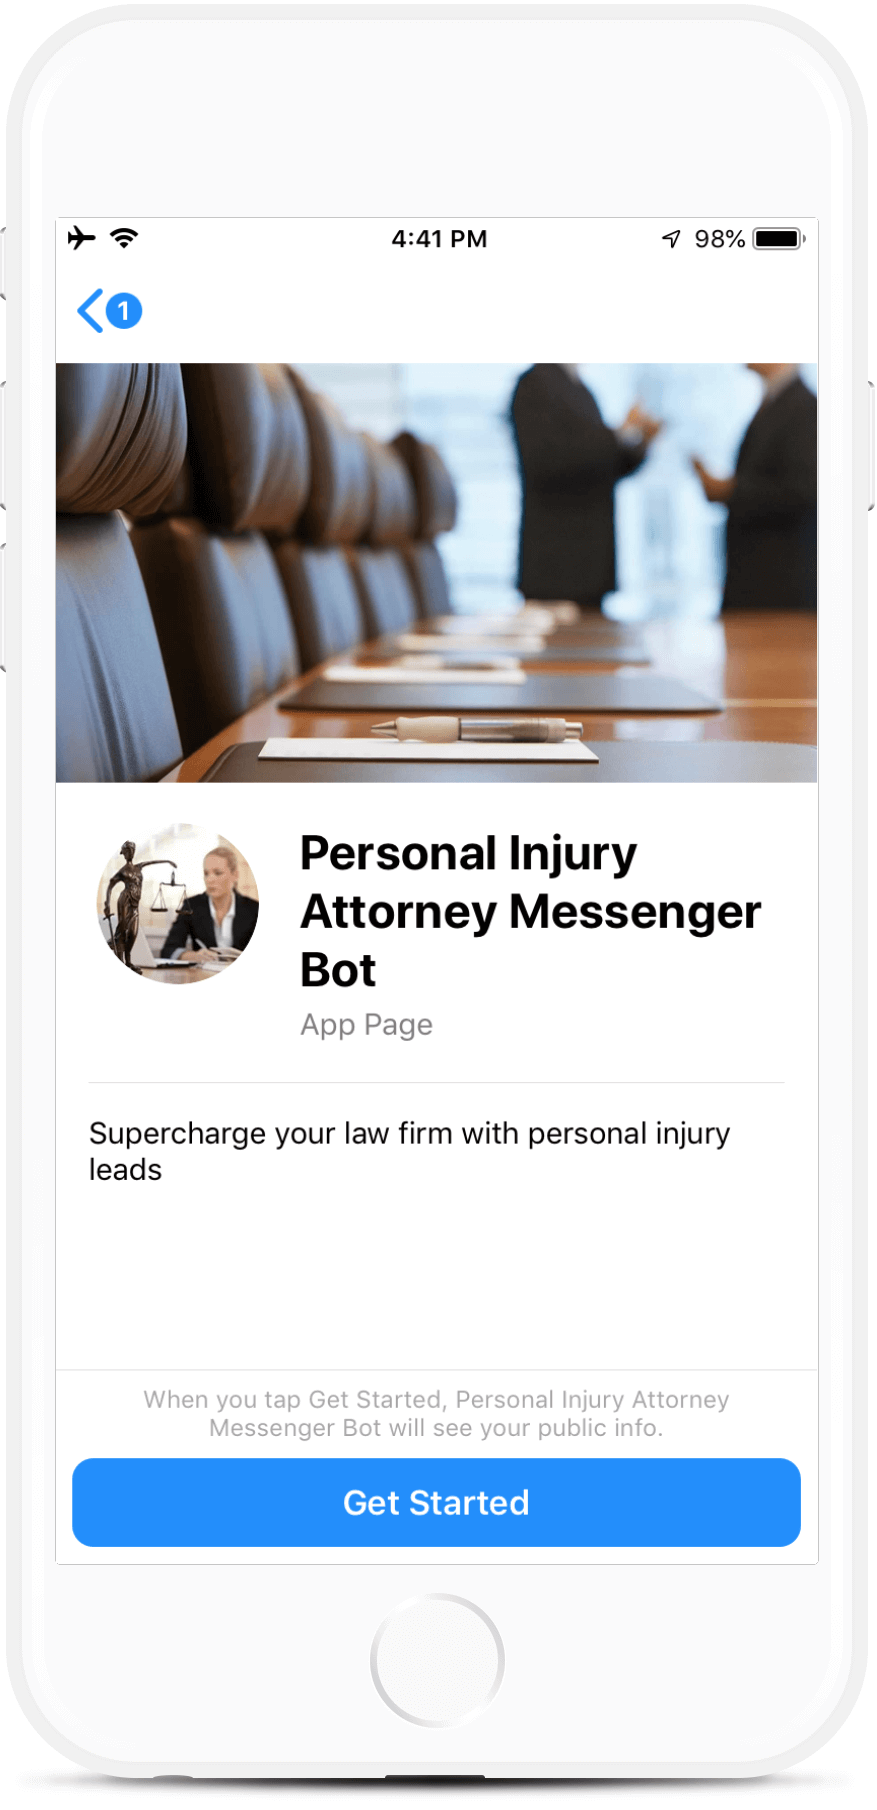 Personal Injury Attorney Messenger bot screenshot